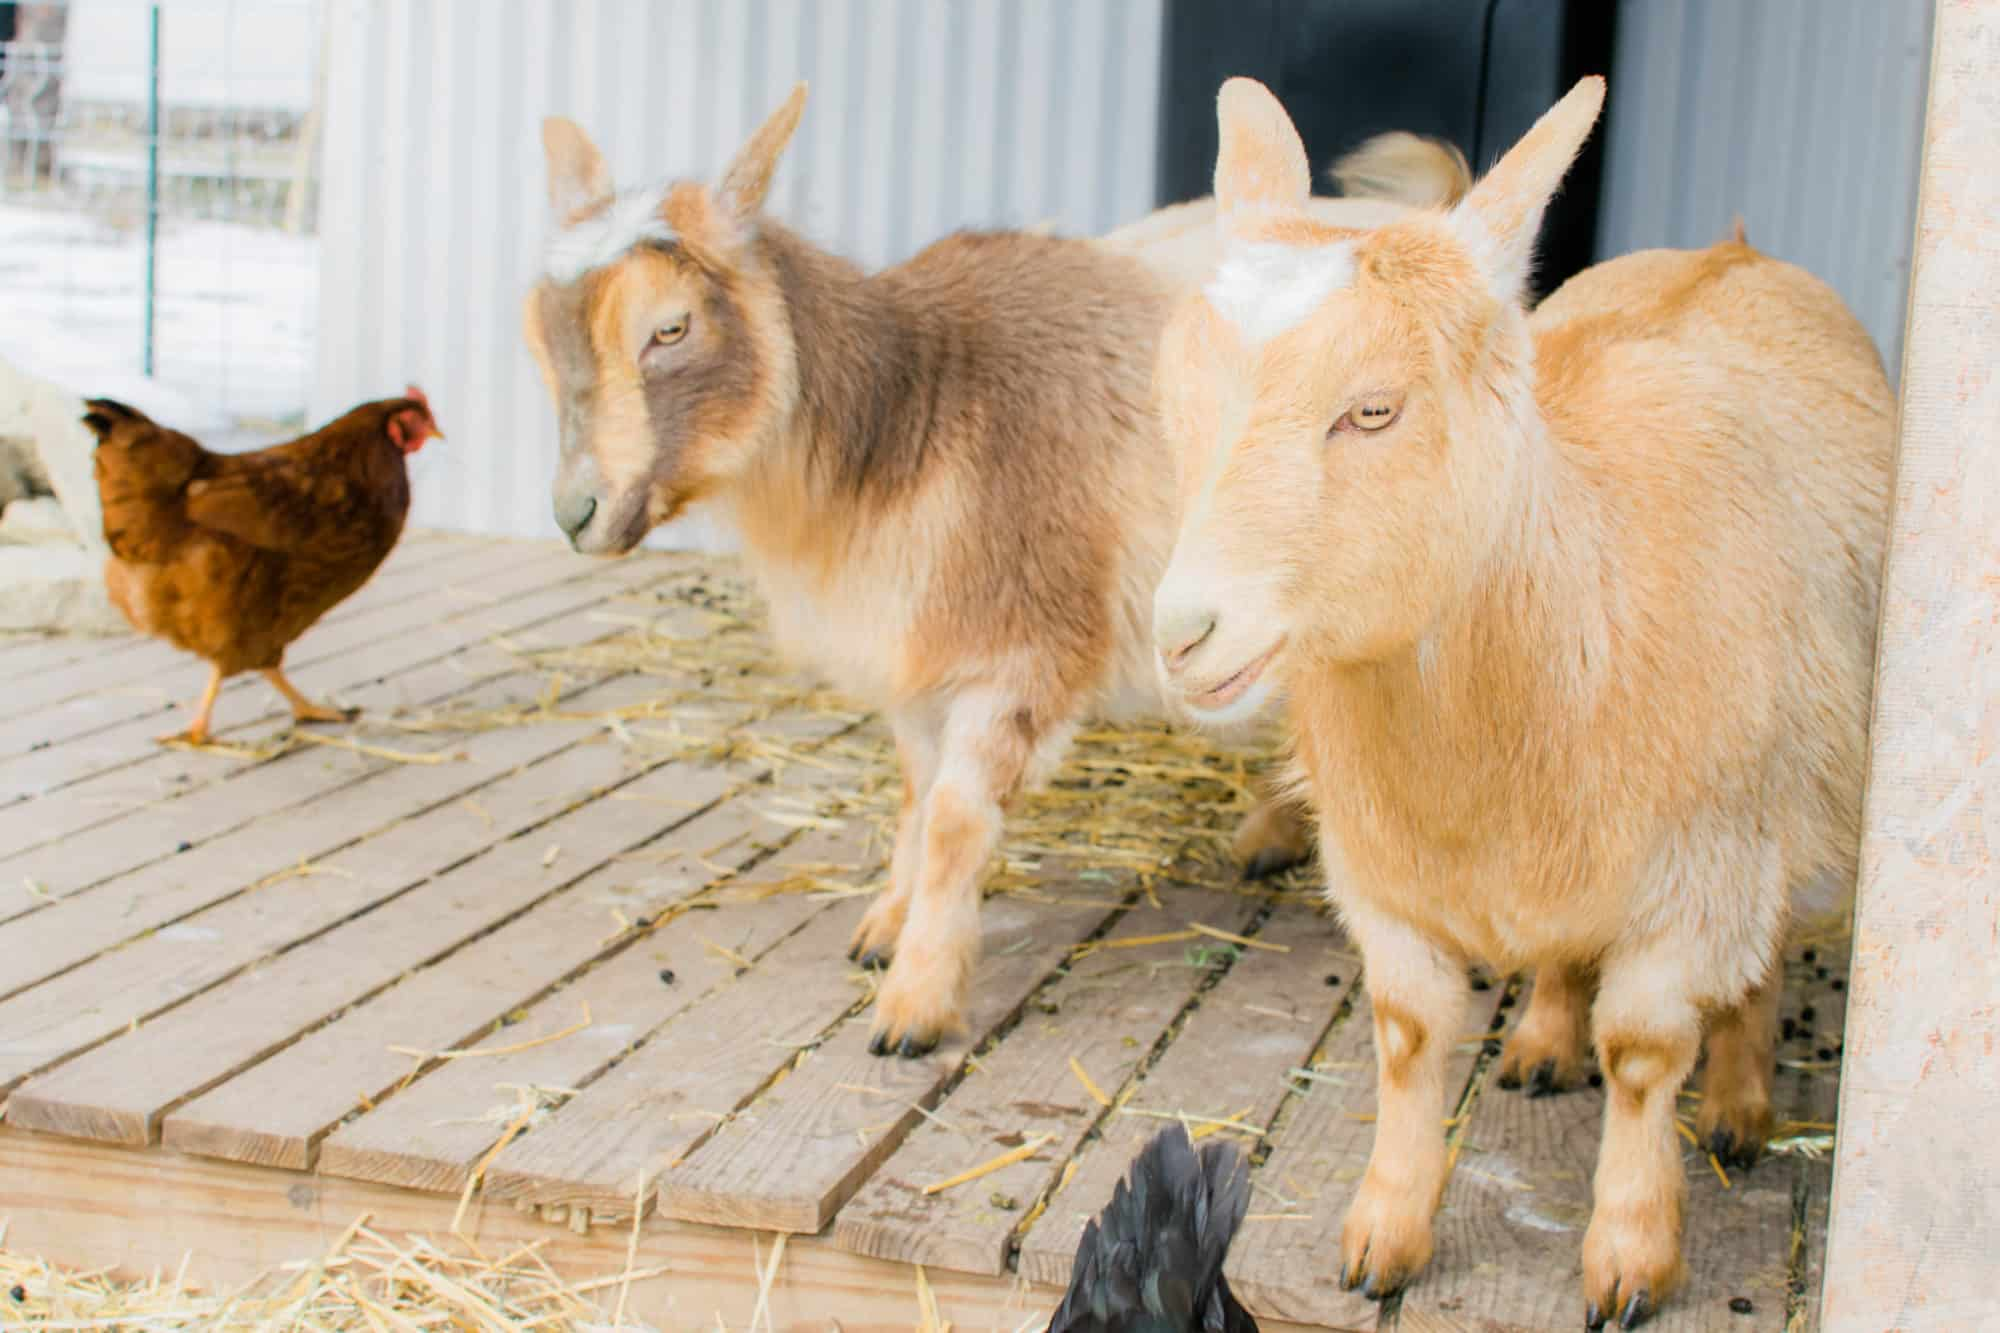 Frenchie Farm Goat kidding supplies & putting together a goat kidding kit